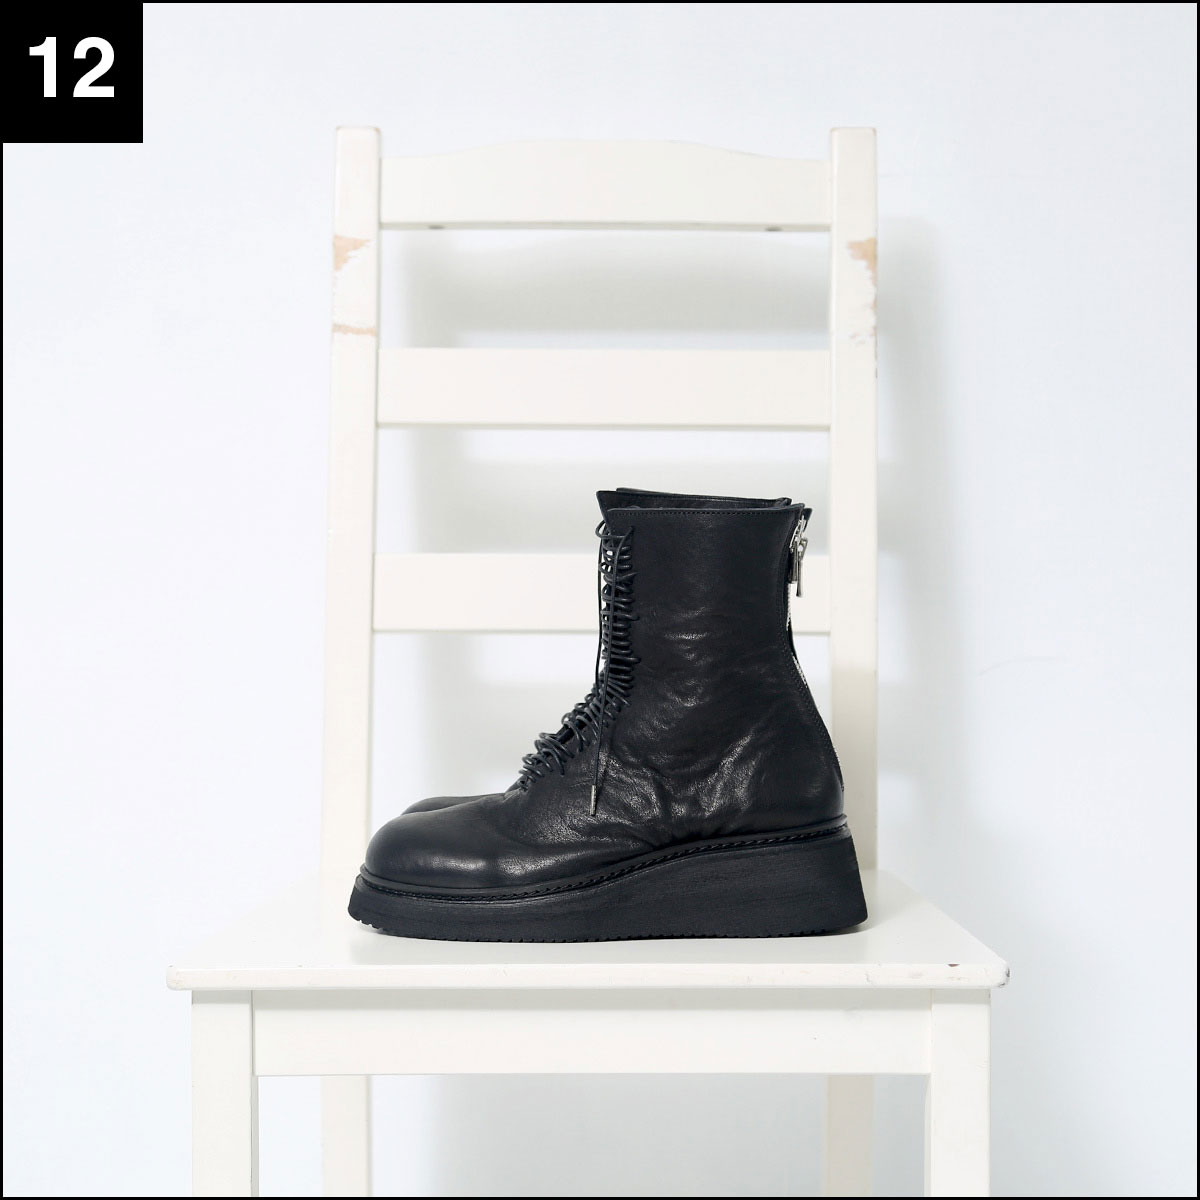 Portaille_LACE UP BOOTS